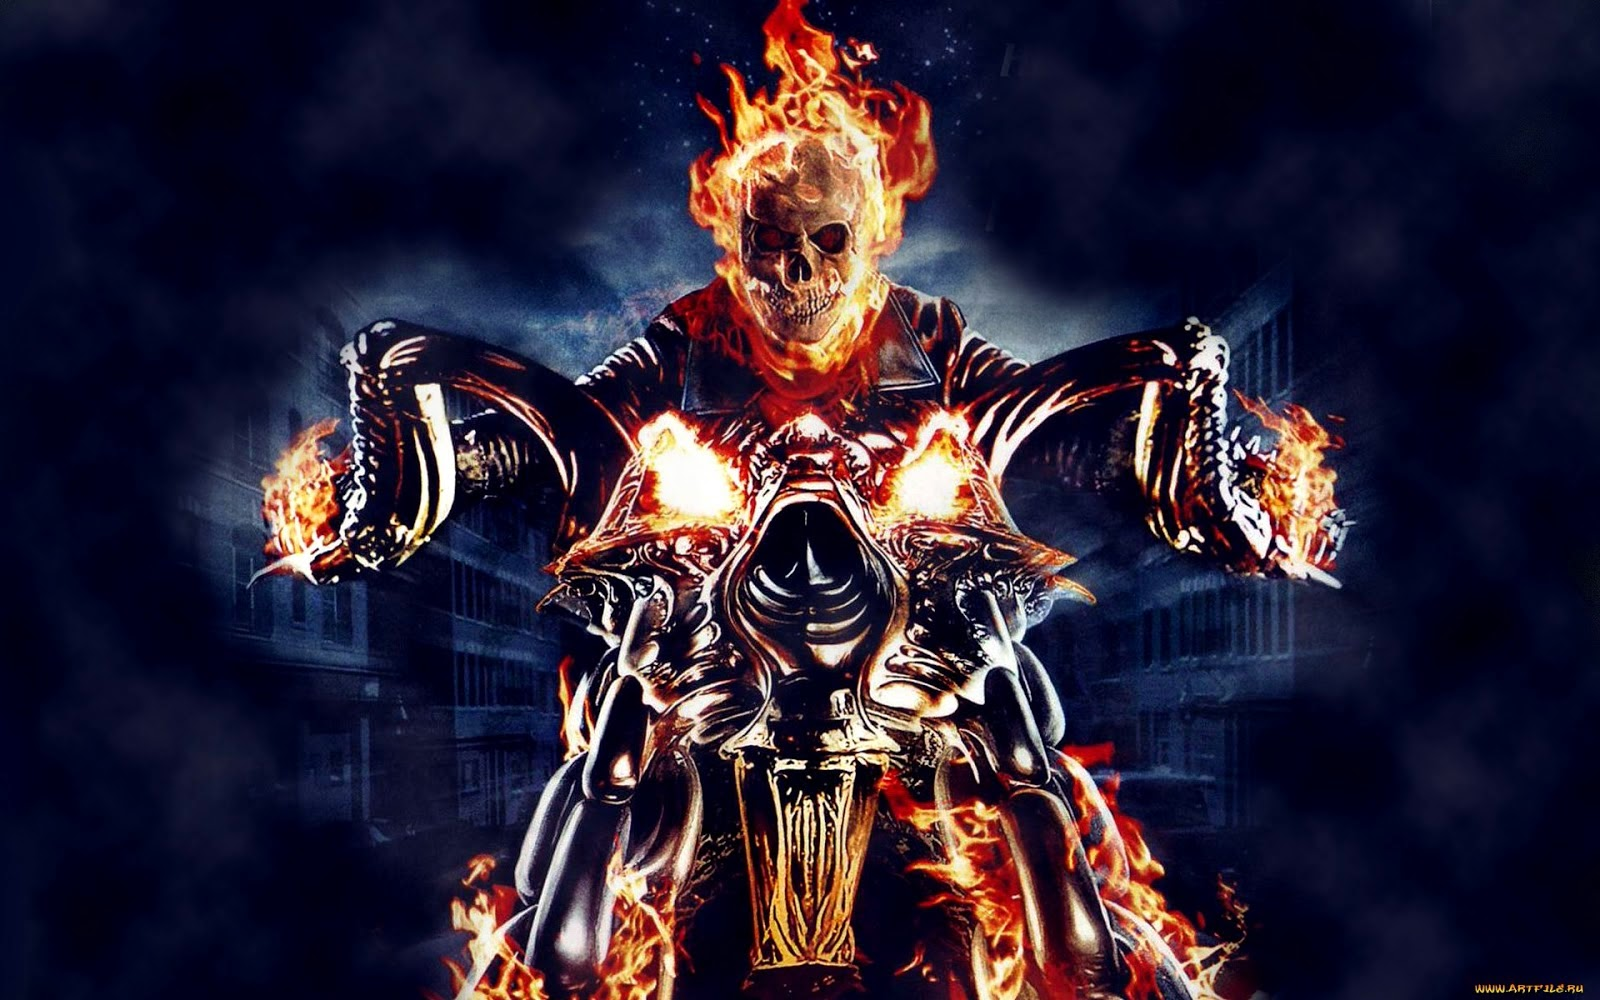 ghost rider hd wallpapers ghost rider hd wallpapers ghost rider hd 1600x1000